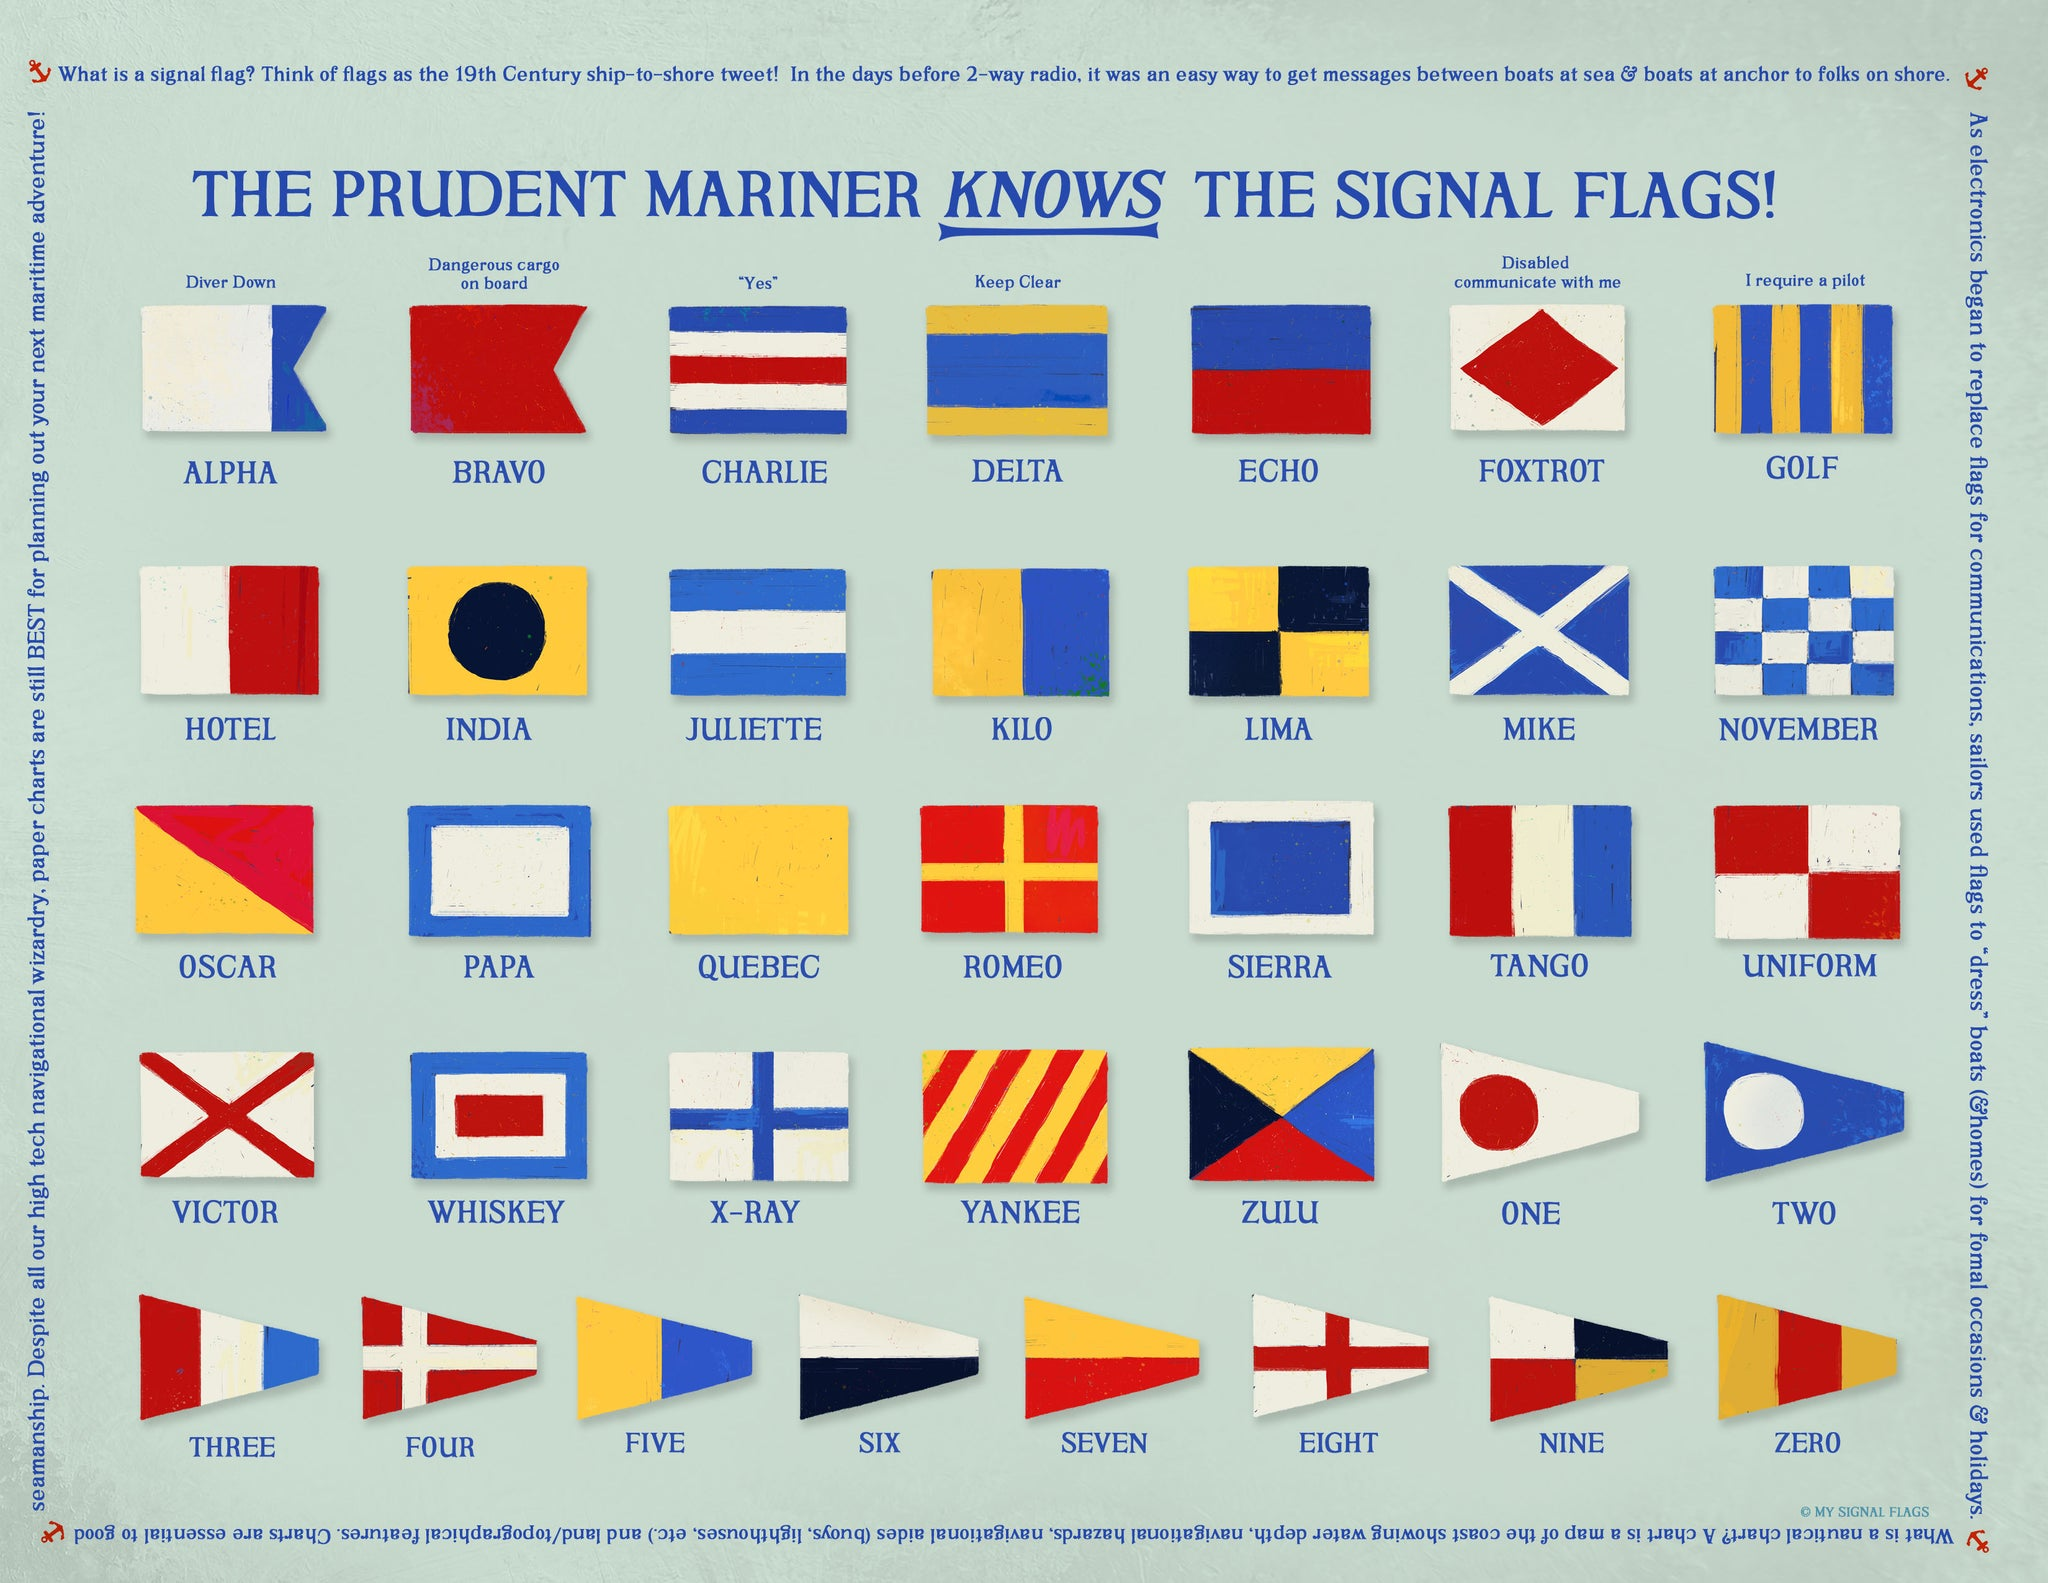 Download This Jpg On Signal Flags And Their Meanings   U2013 My